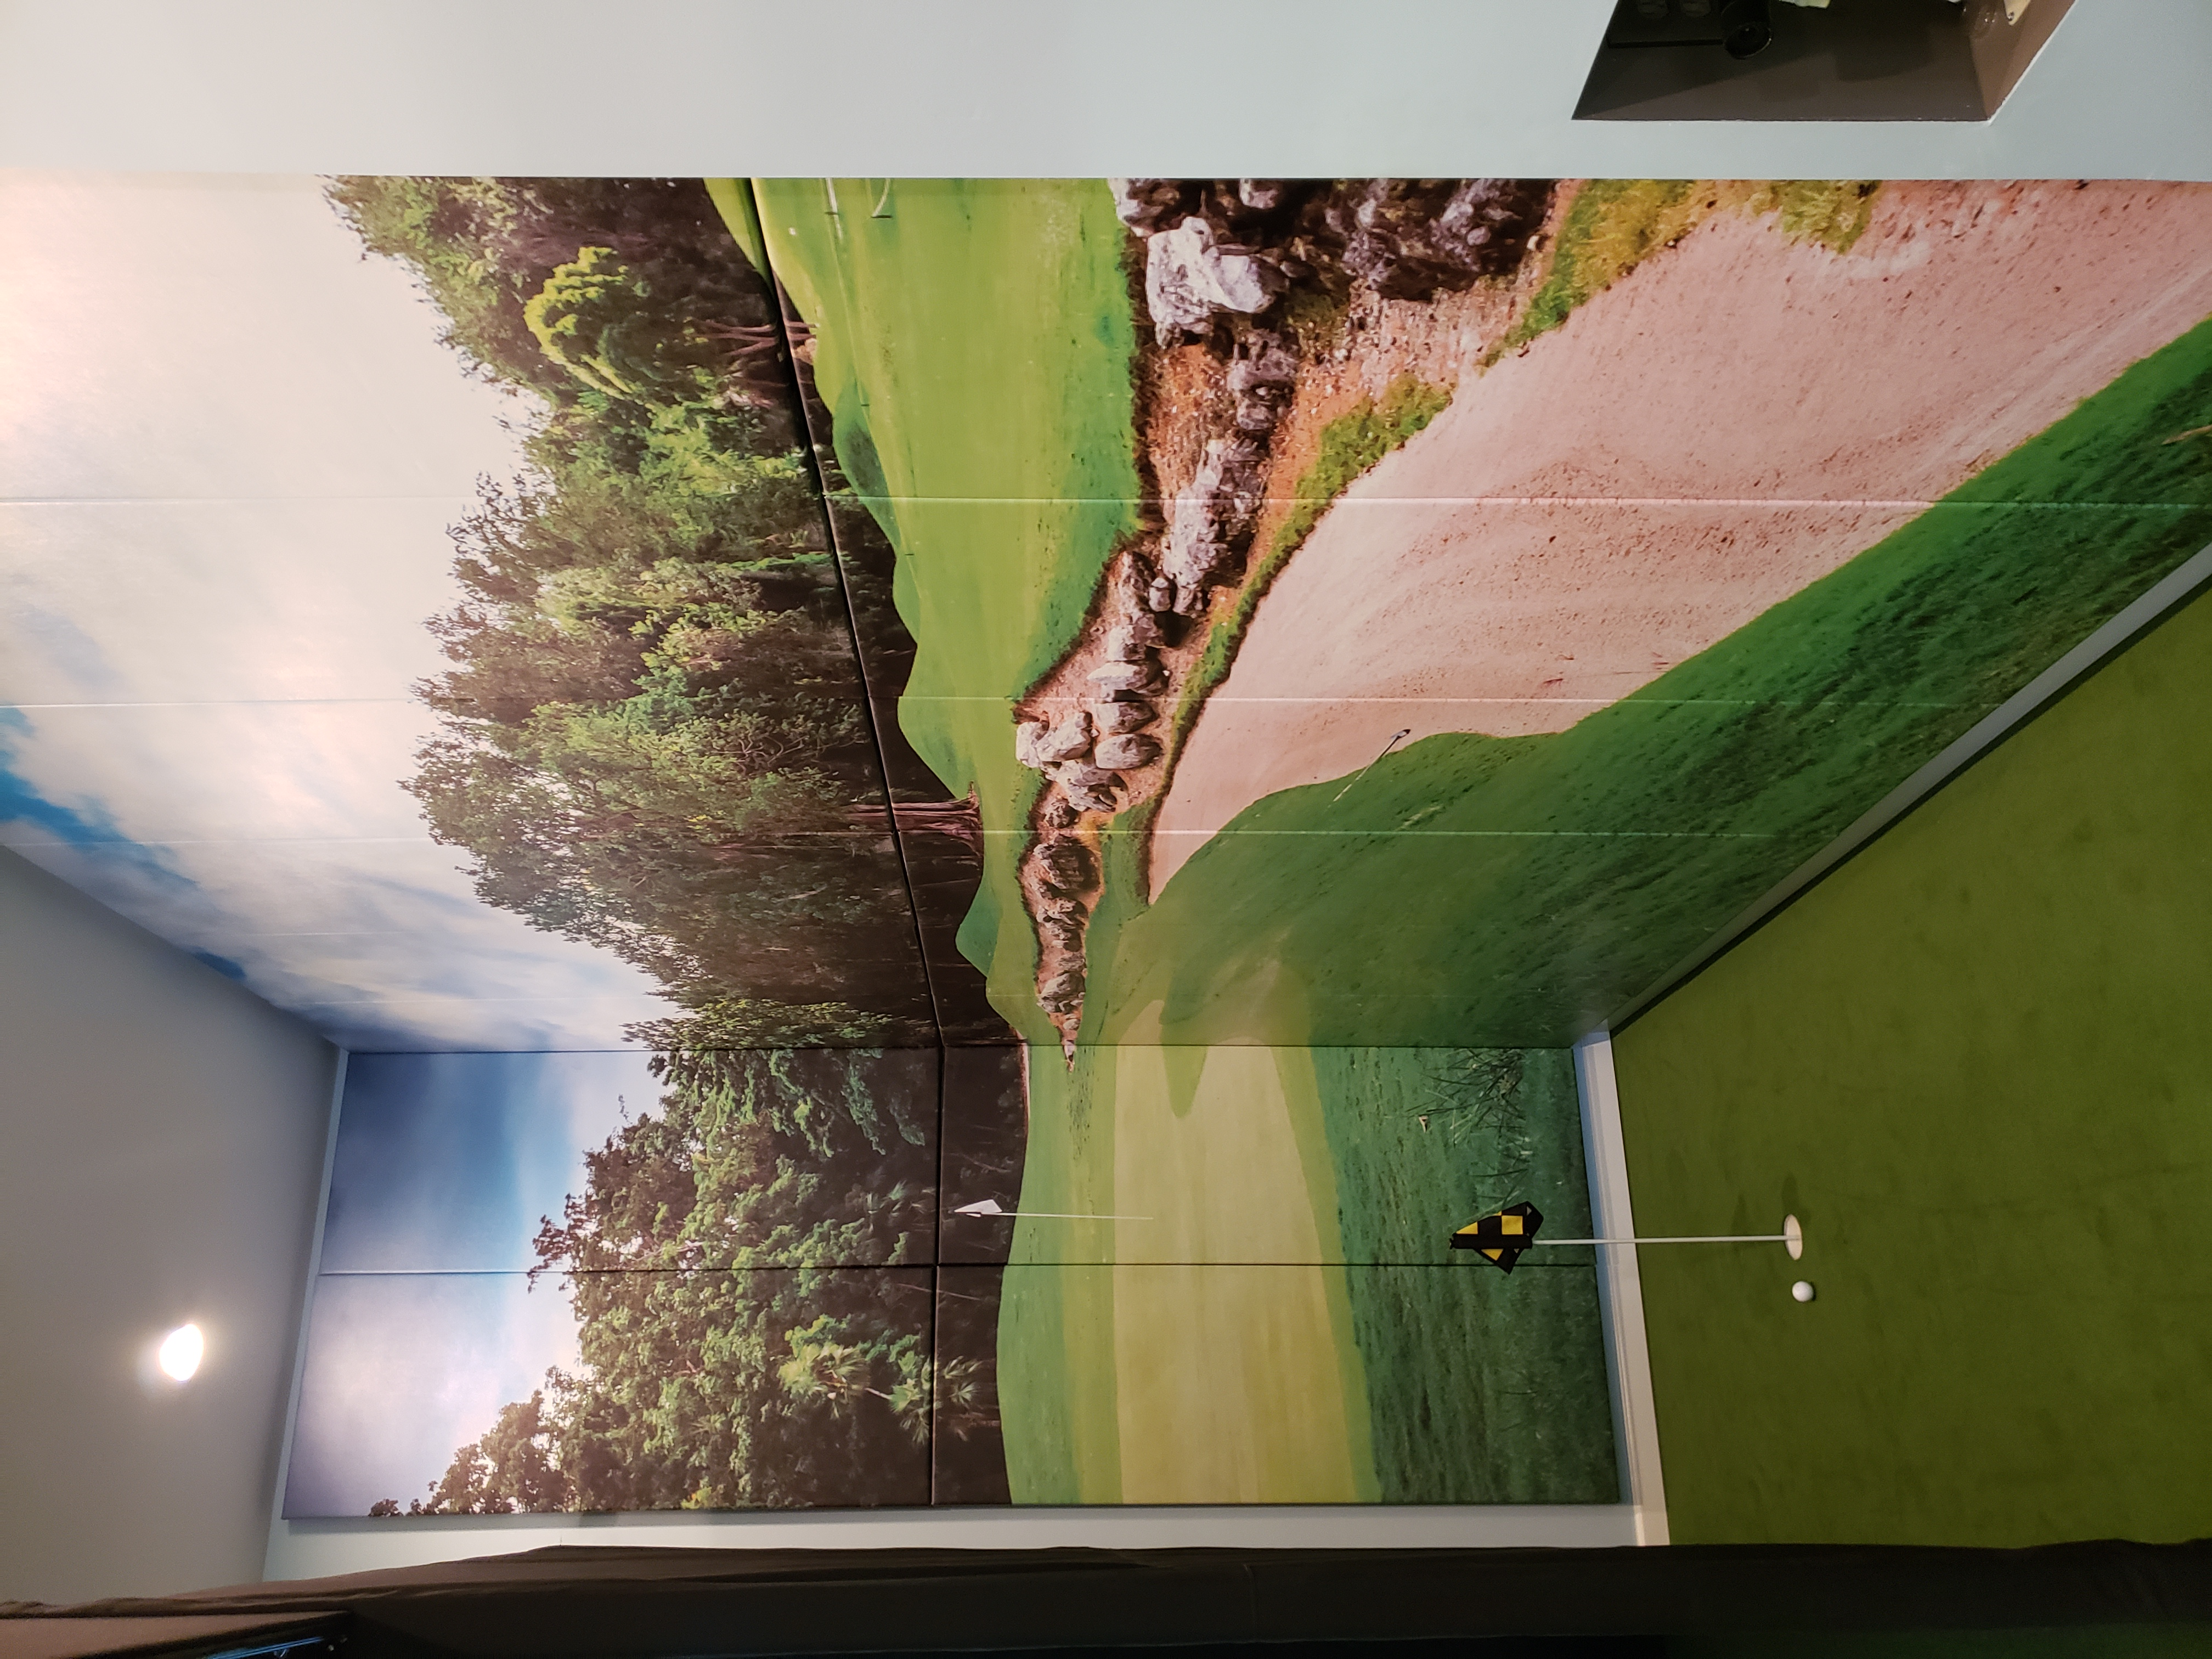 Graphic Image of Golf Course in Golf Simulator Wall Pads